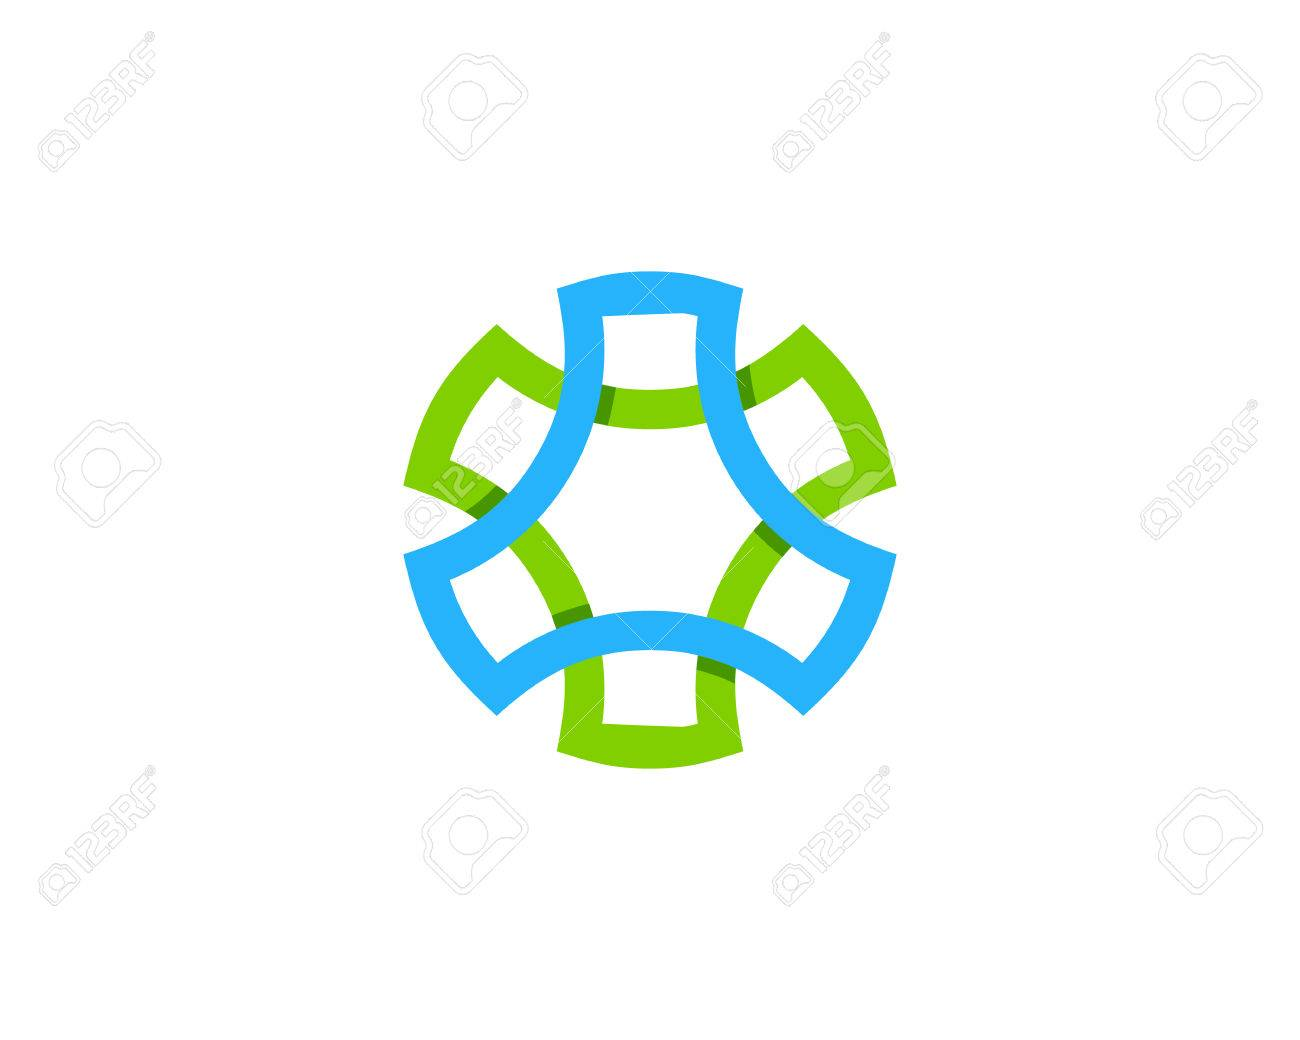 Spin Wheel Logo Design Template Royalty Free Cliparts, Vectors, And ...